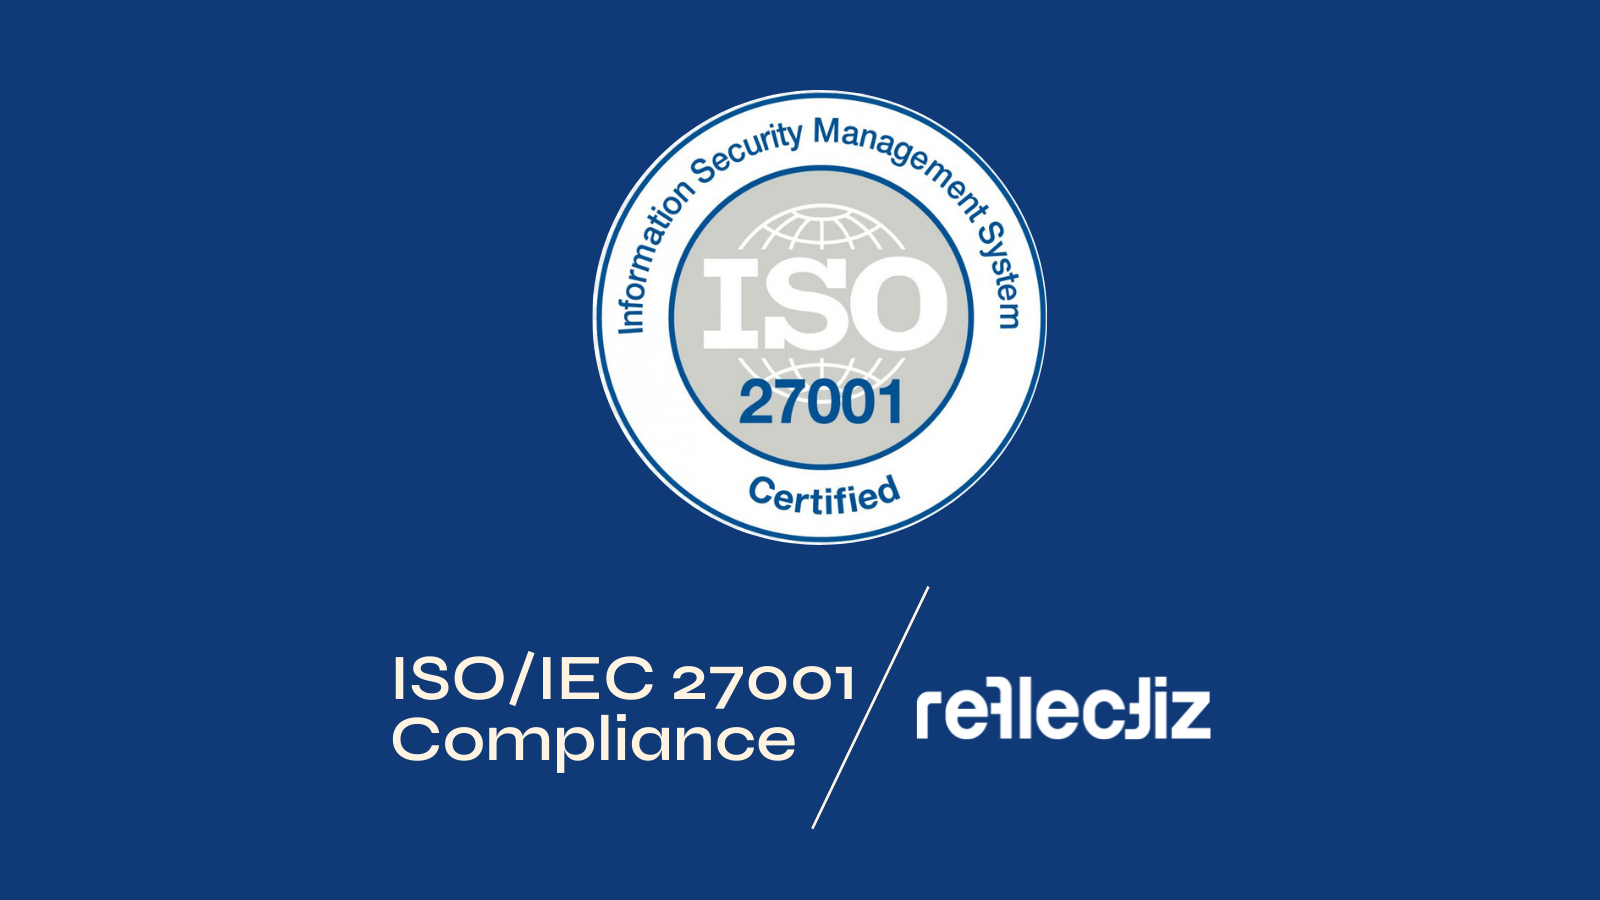 Reflectiz Officially Receives ISO 27001 Certification